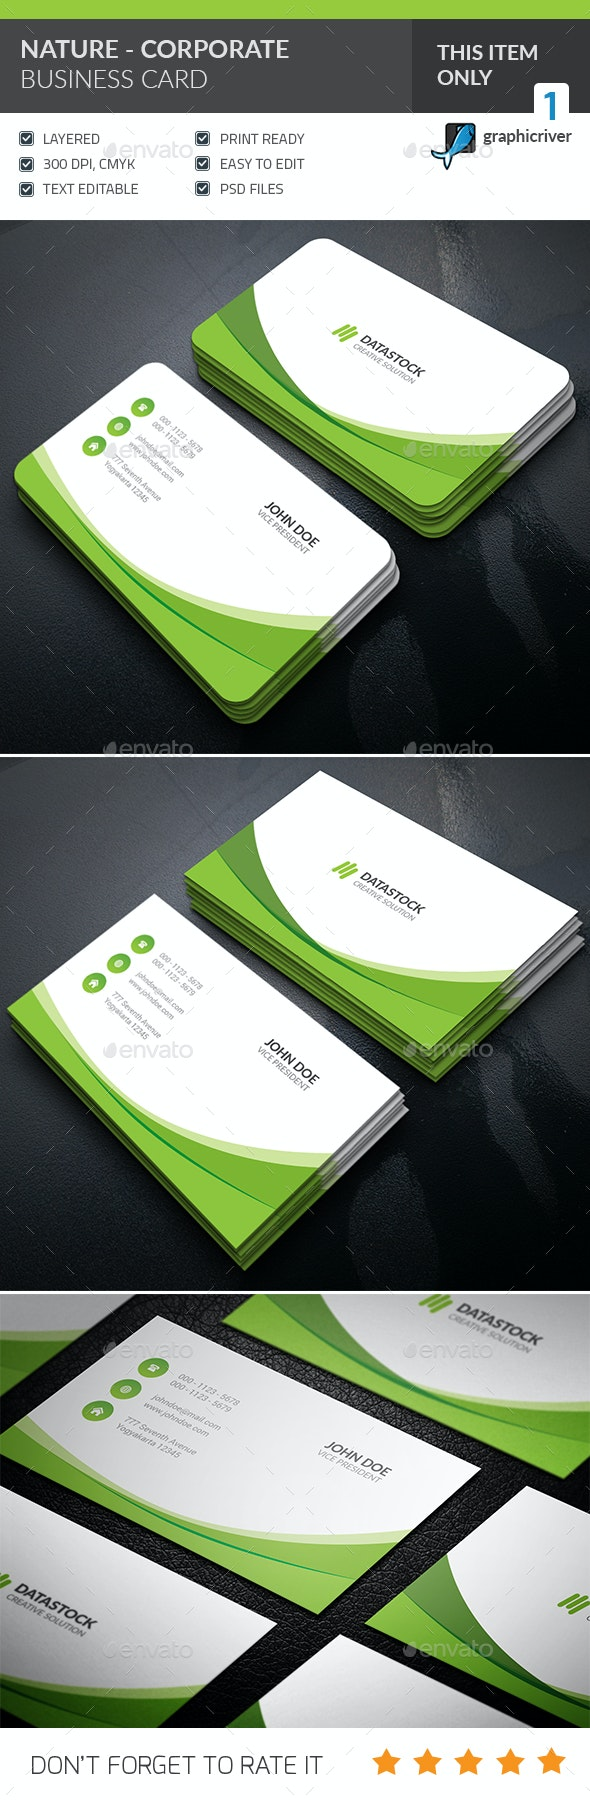 Nature Corporate Business Card - Corporate Business Cards